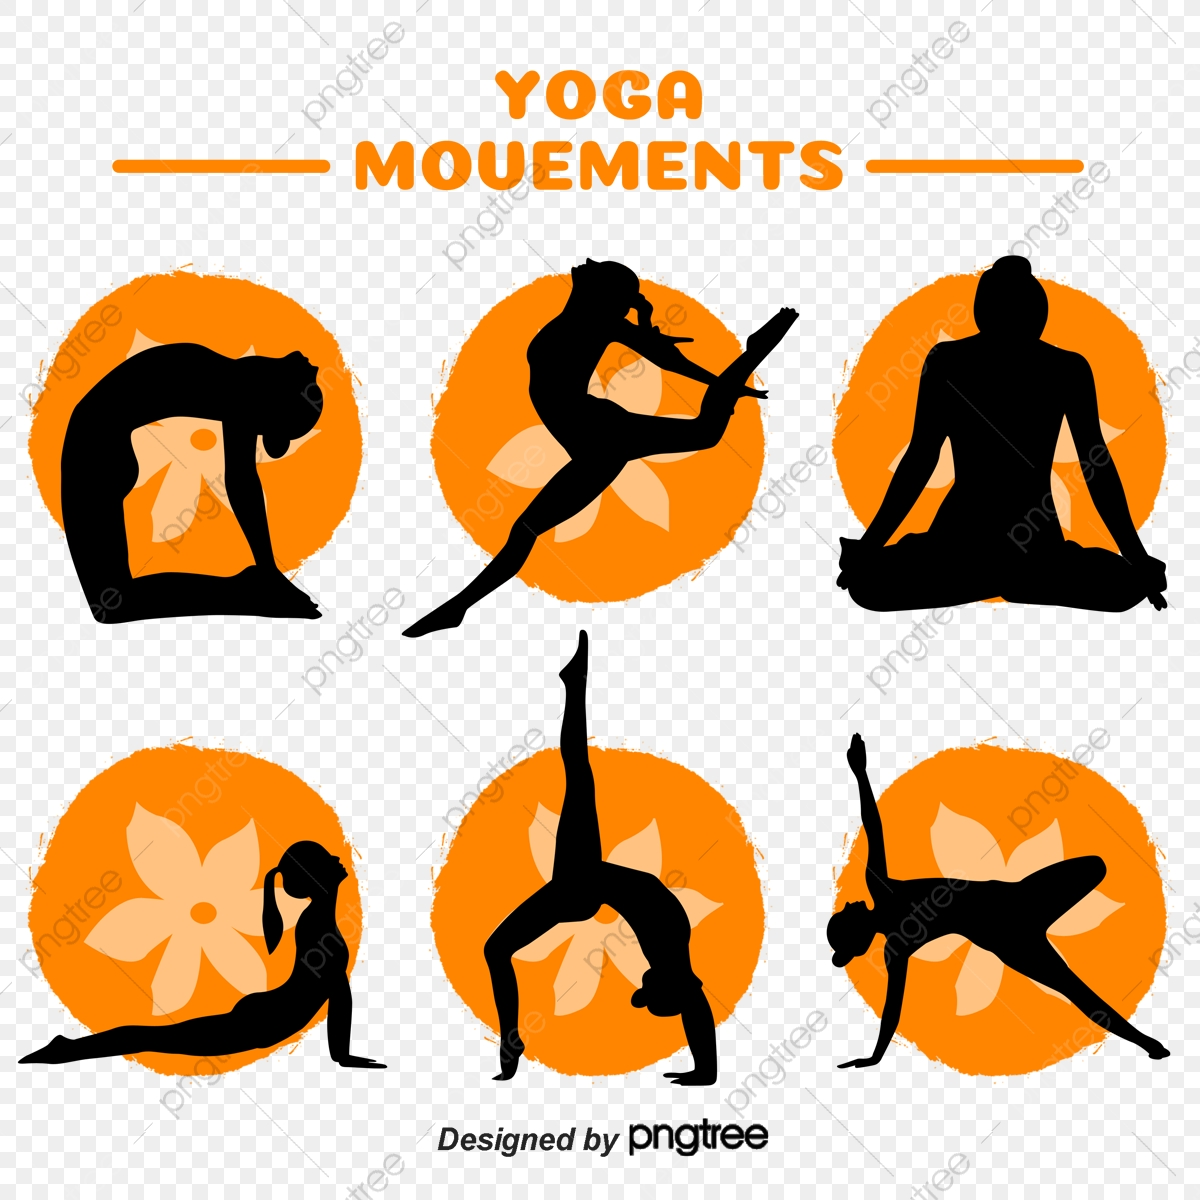 Yoga Poses Icon Yoga For Women Fitness Exercise Vector Png Transparent Clipart Image And Psd File For Free Download